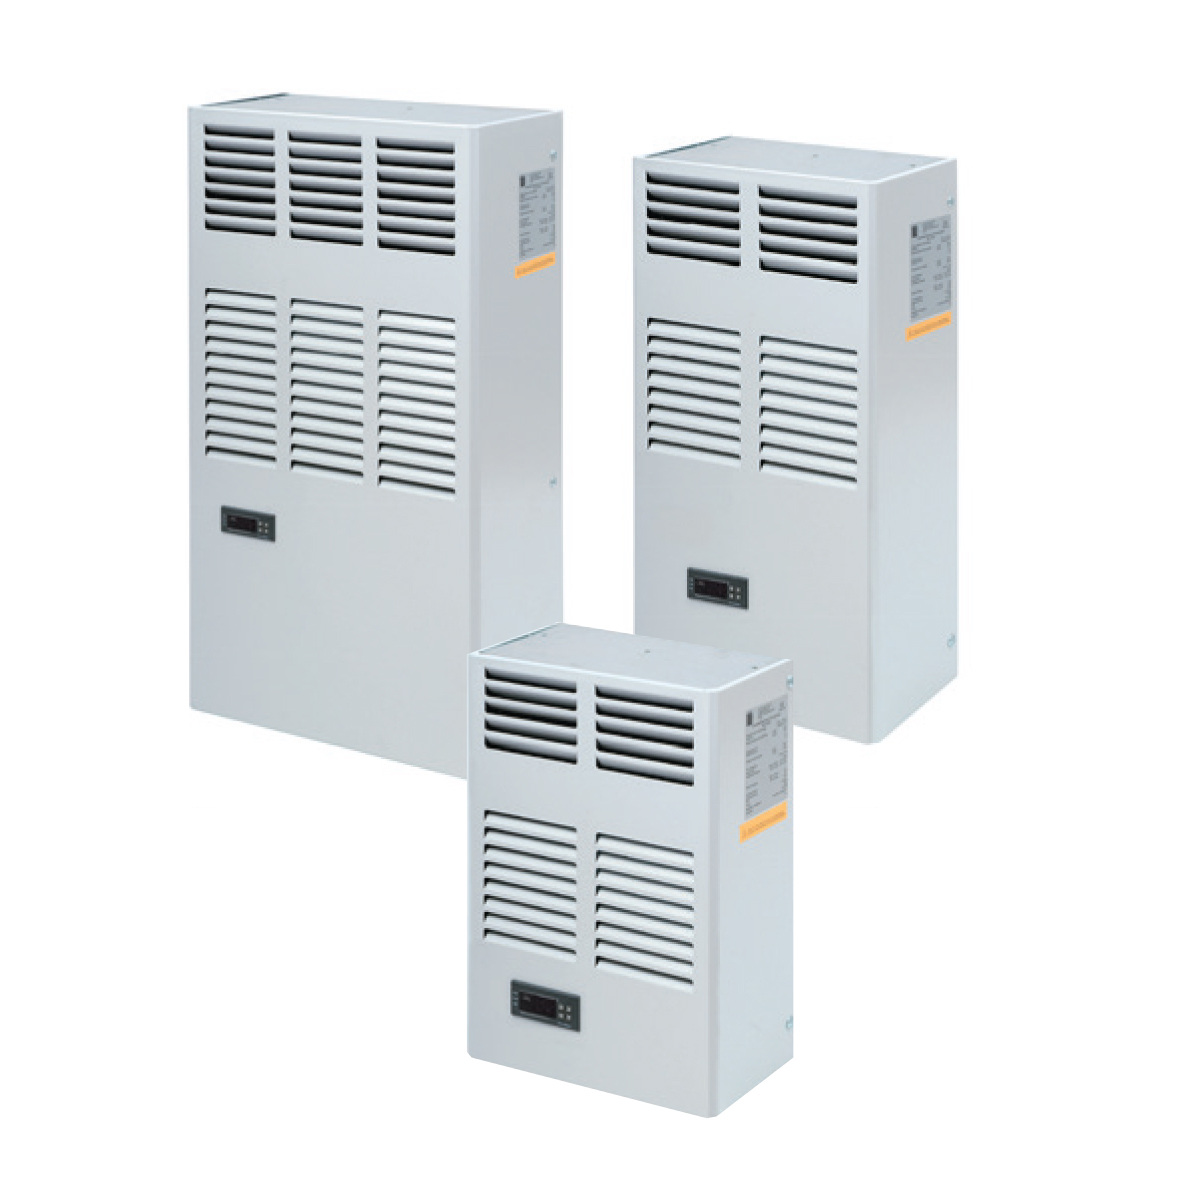 Wall Mounted Air Conditioners – Phoenix Engineering and